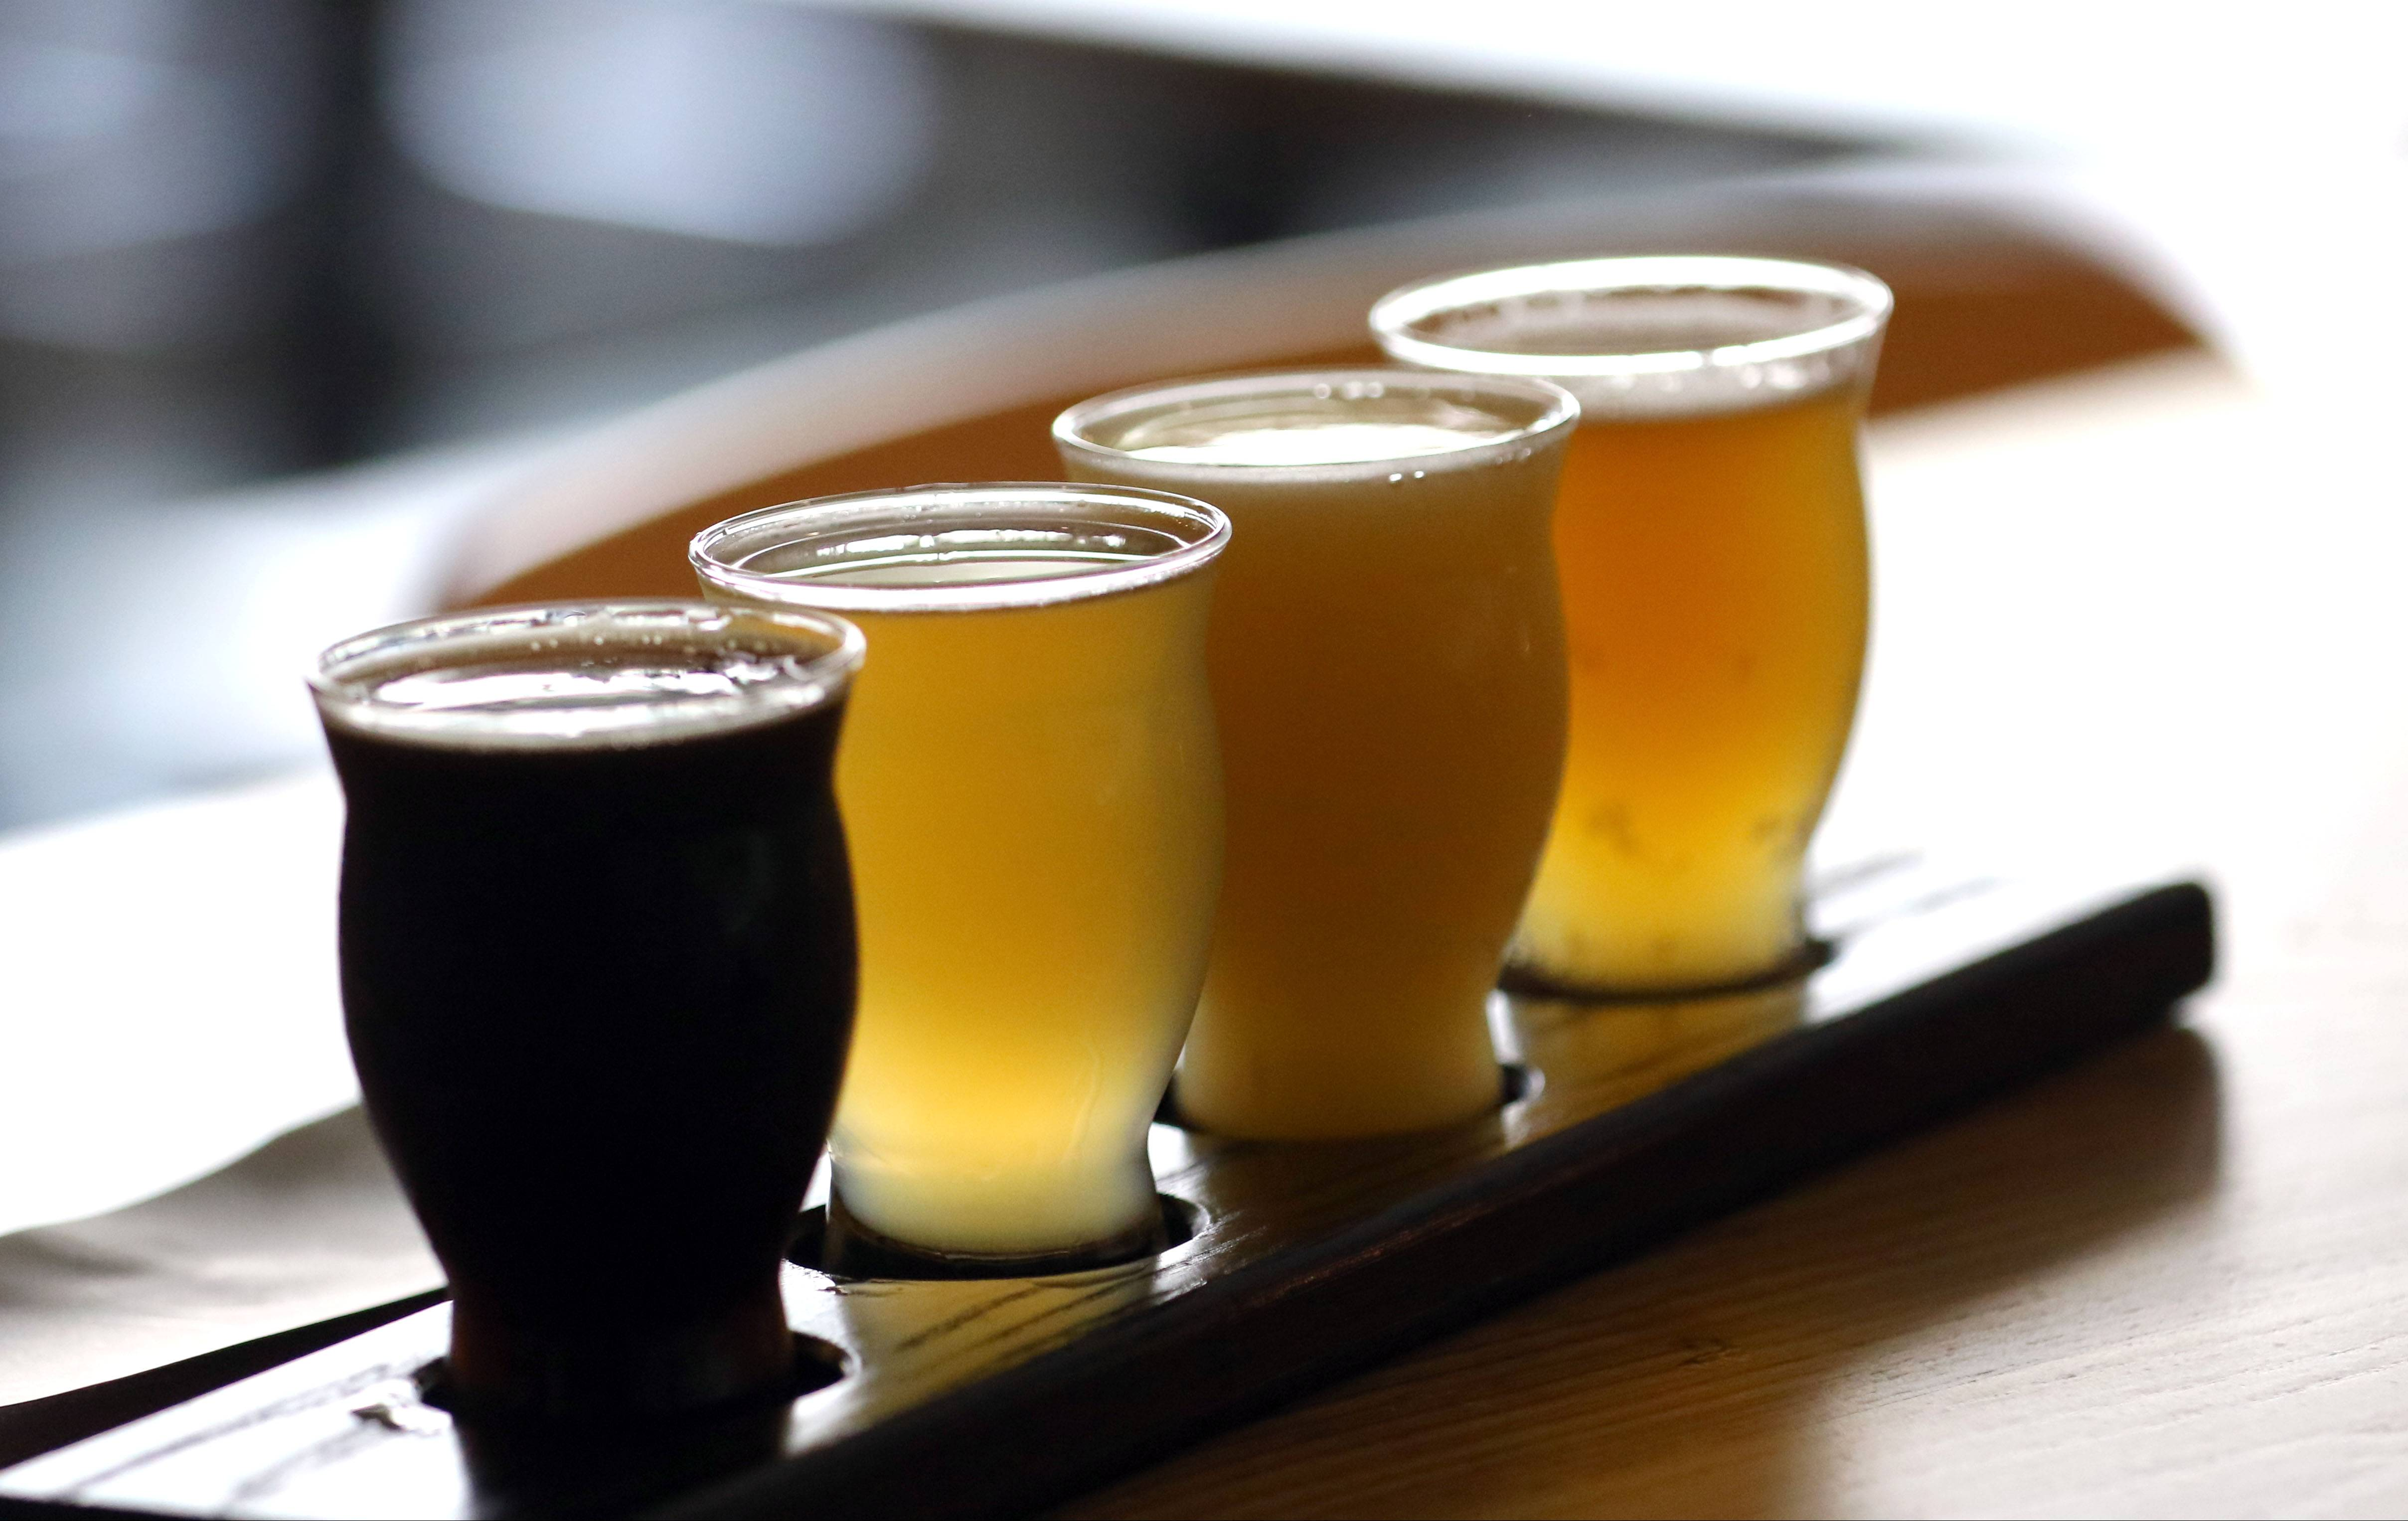 Roaring Table Brewery in Lake Zurich is one of many places in Lake County to get a flight of local brews. It's part of the Lake County Libation Trail.